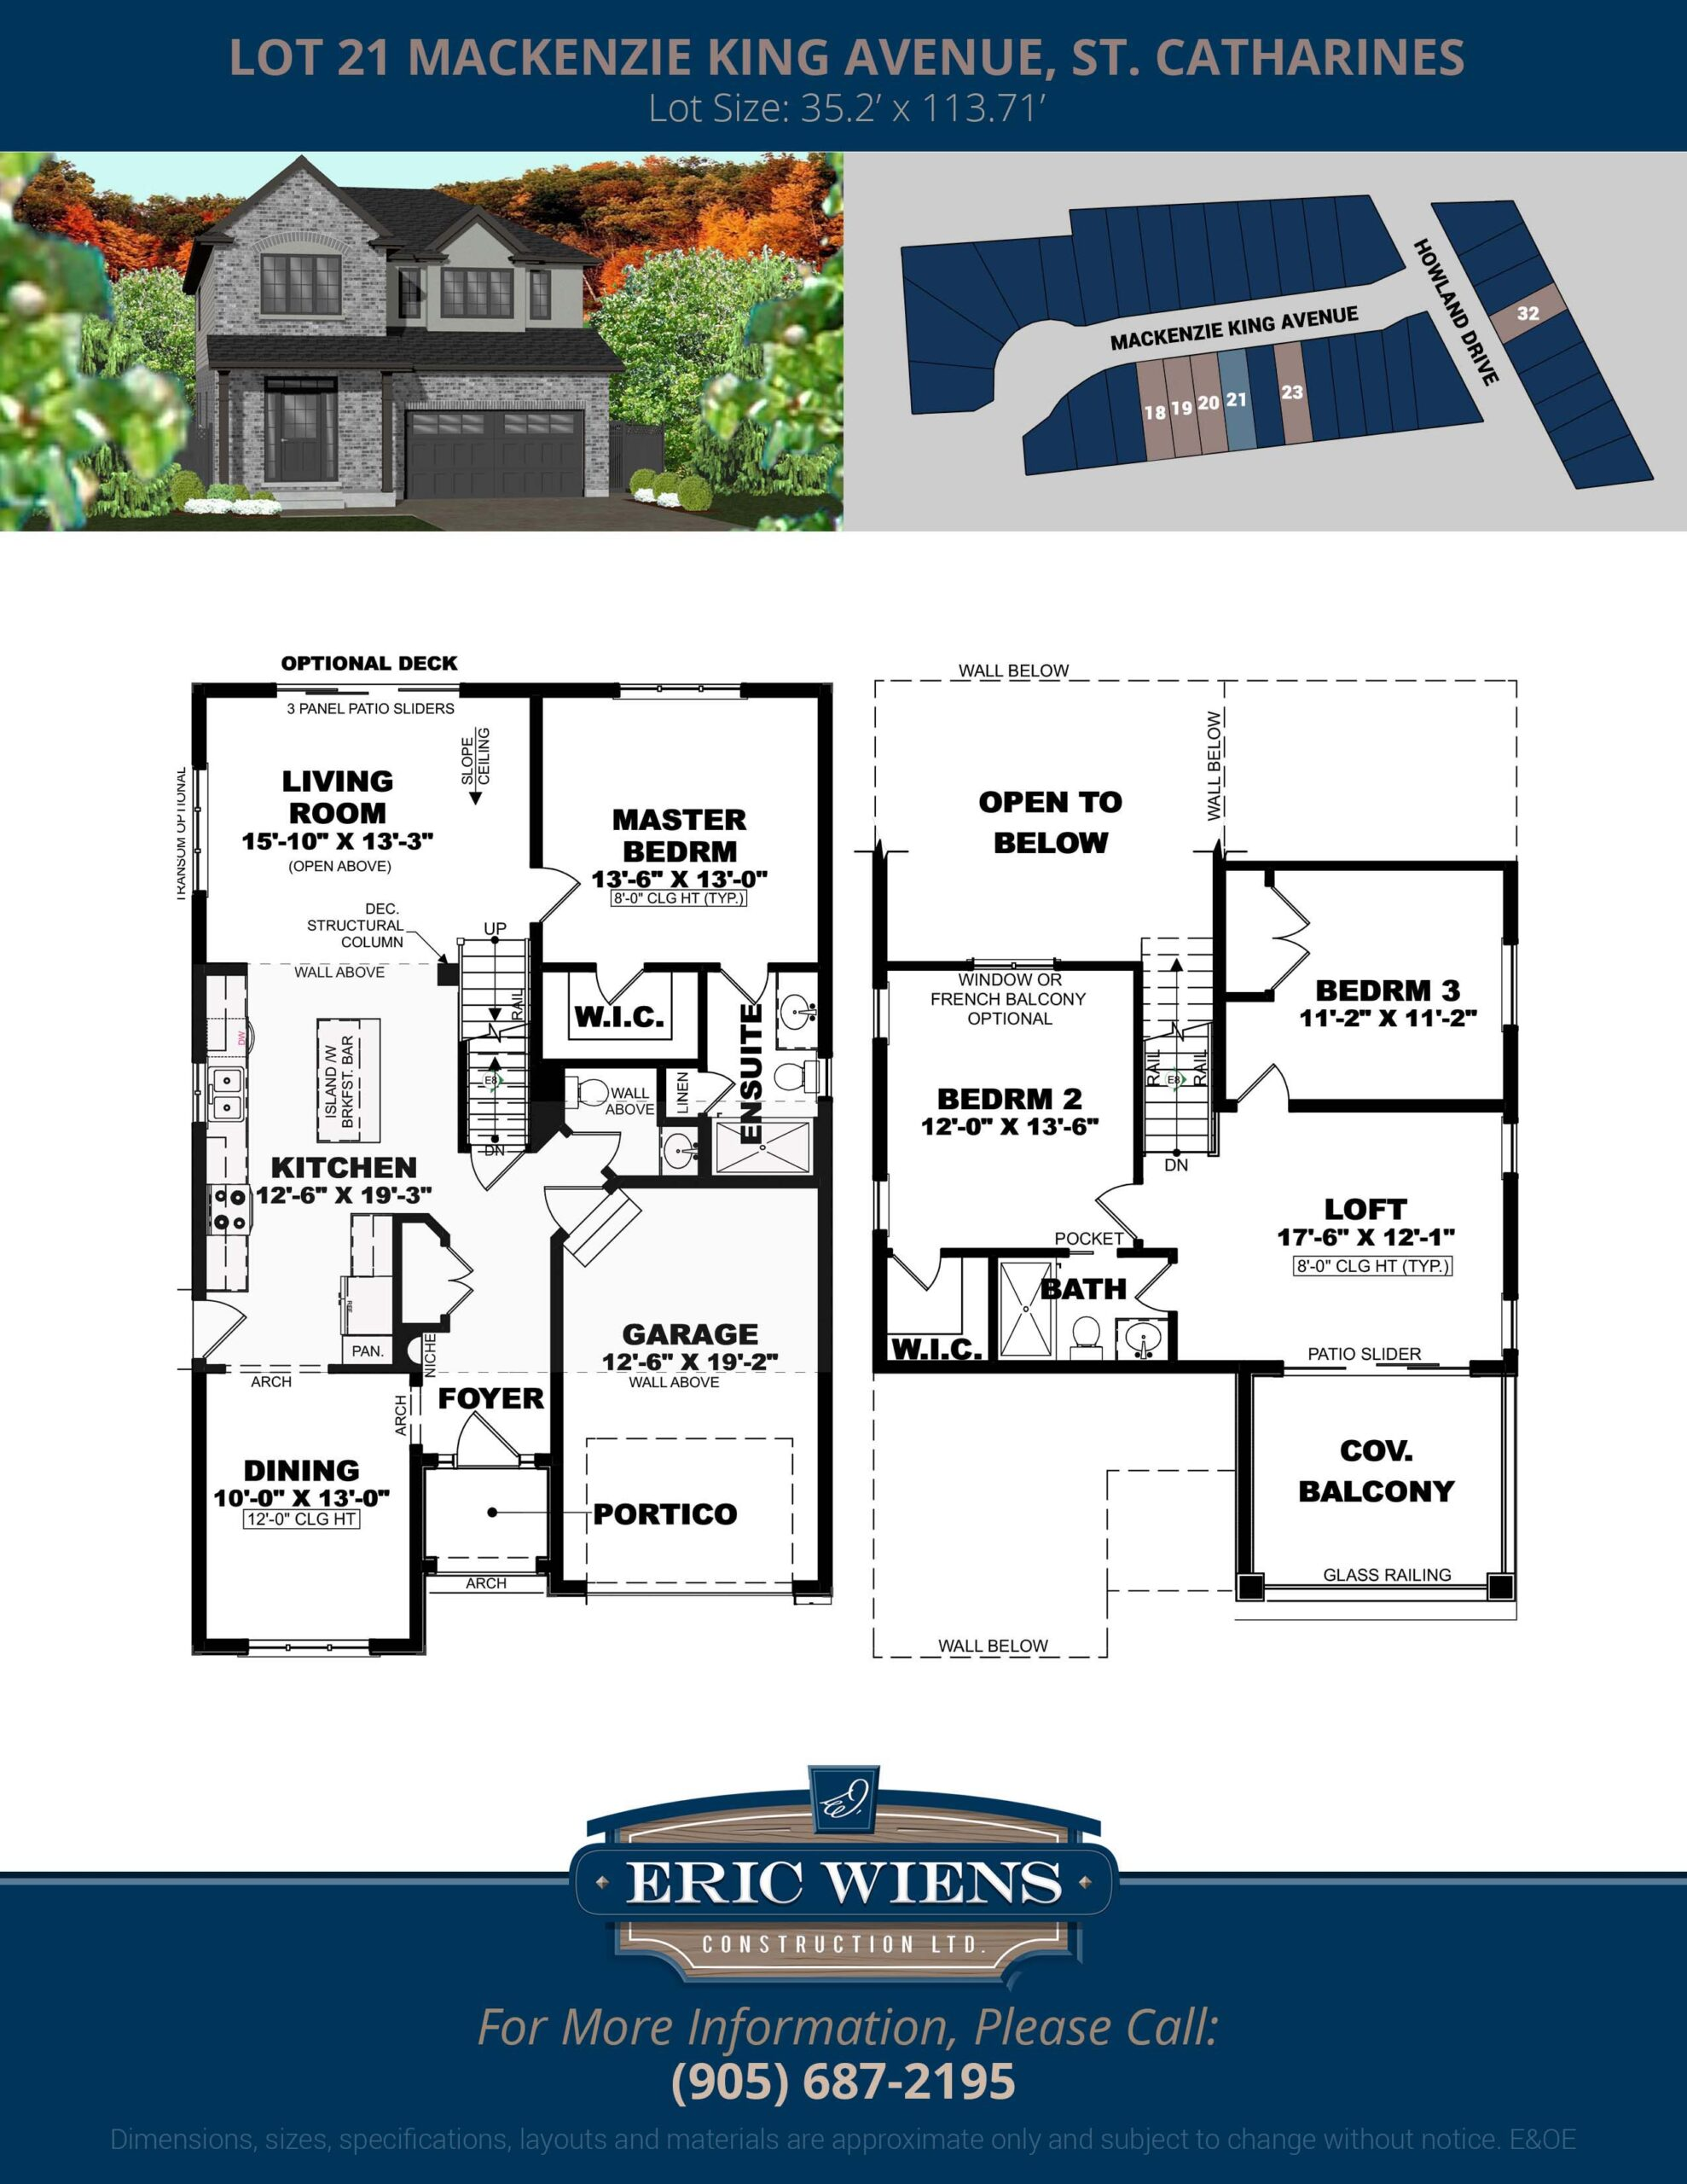 Lot 21 Mackenzie King Avenue Floor Plan